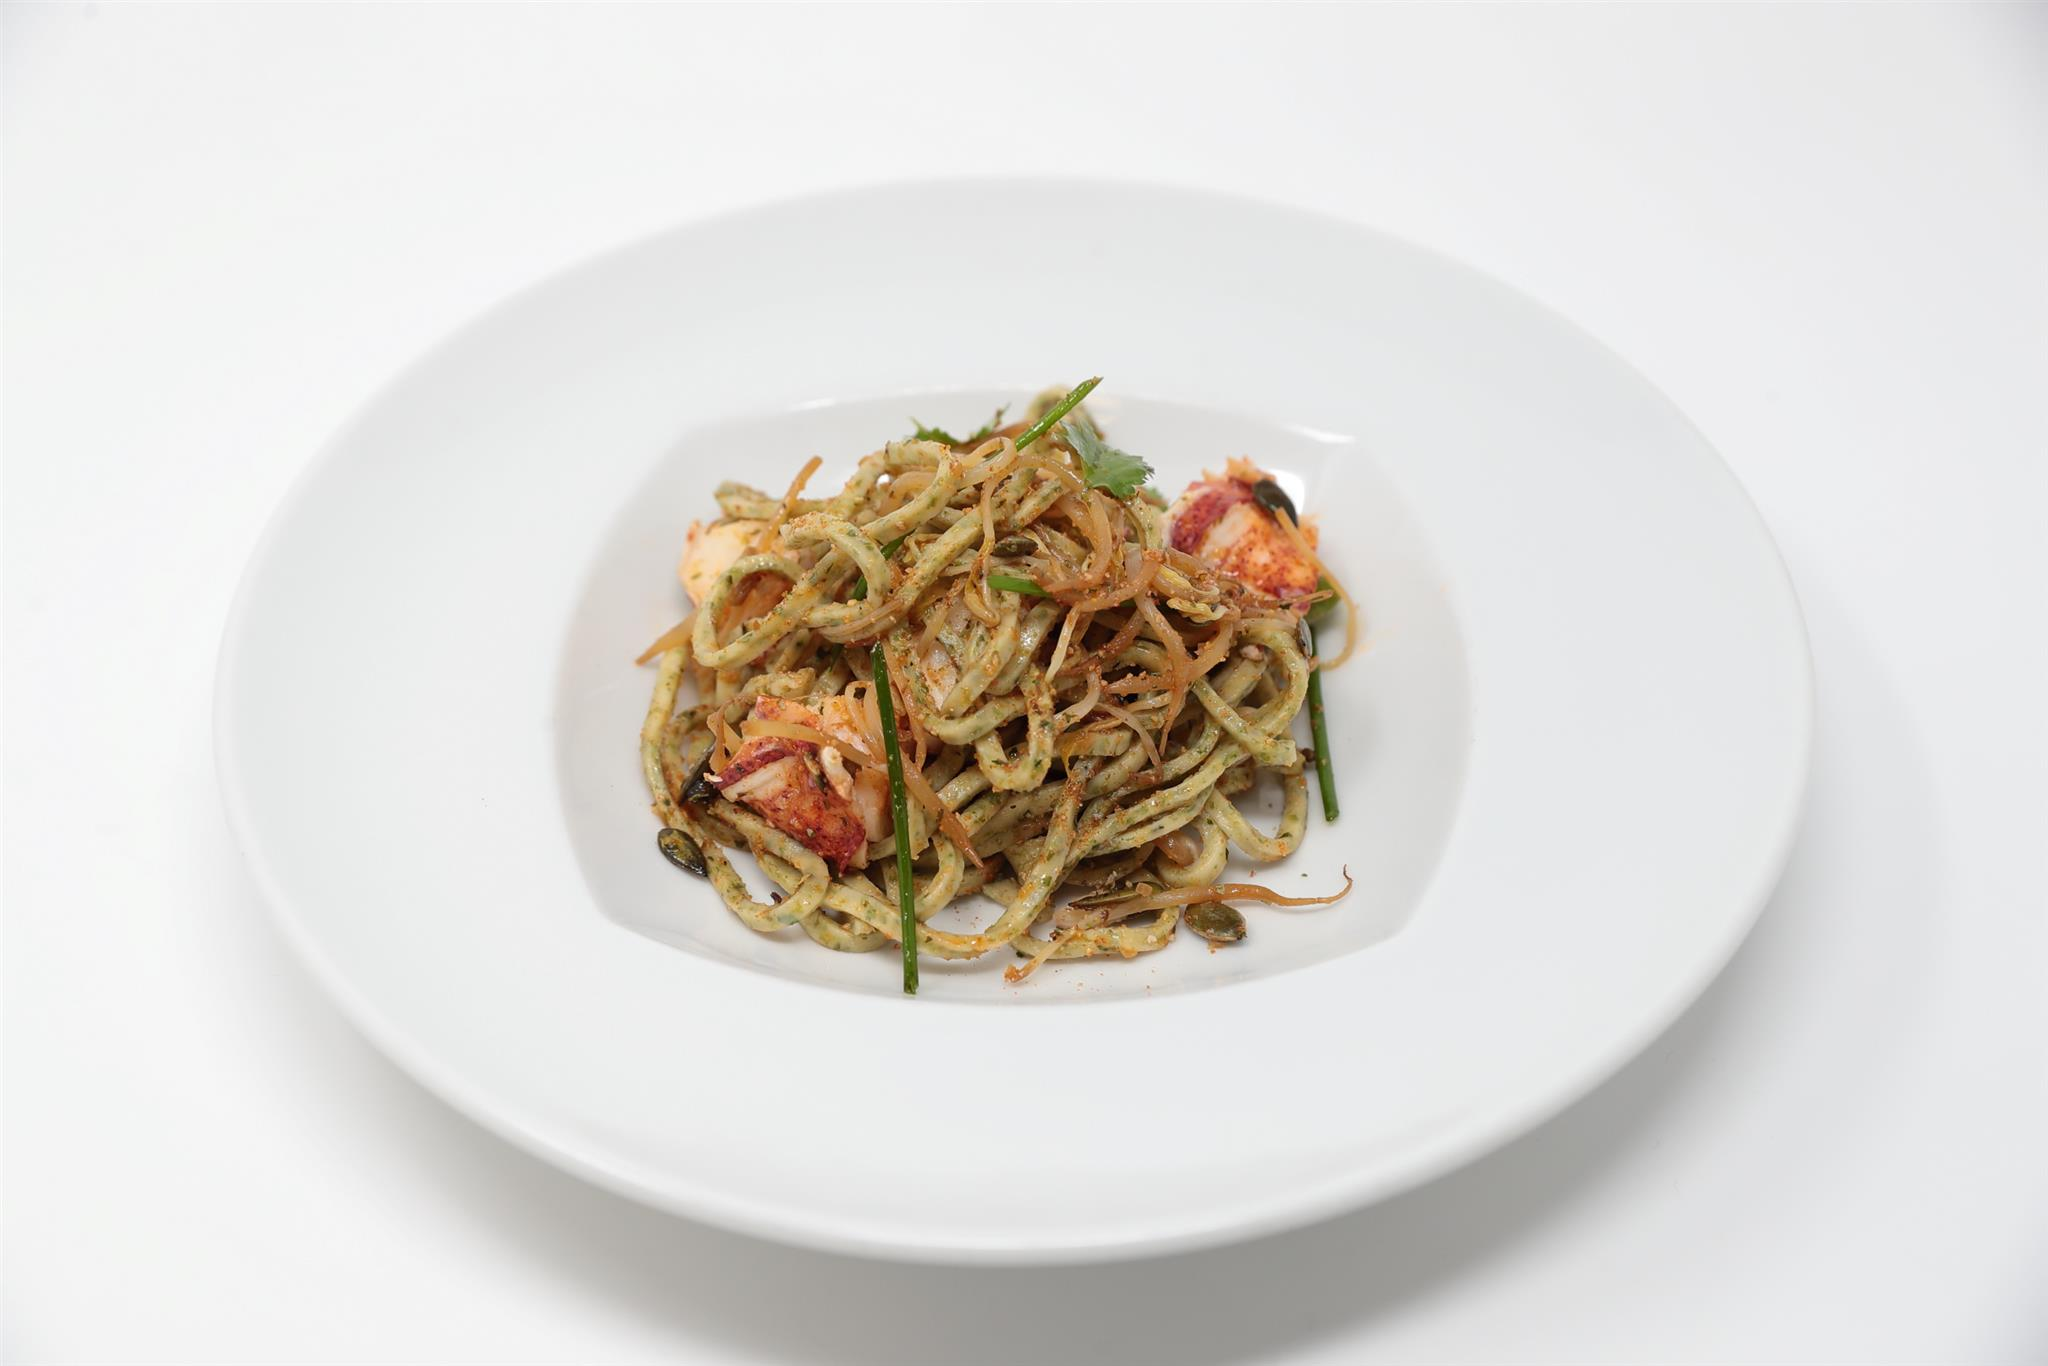 daruma-seasons-chef-barbieri-estate-2018-insalata-spaghetti